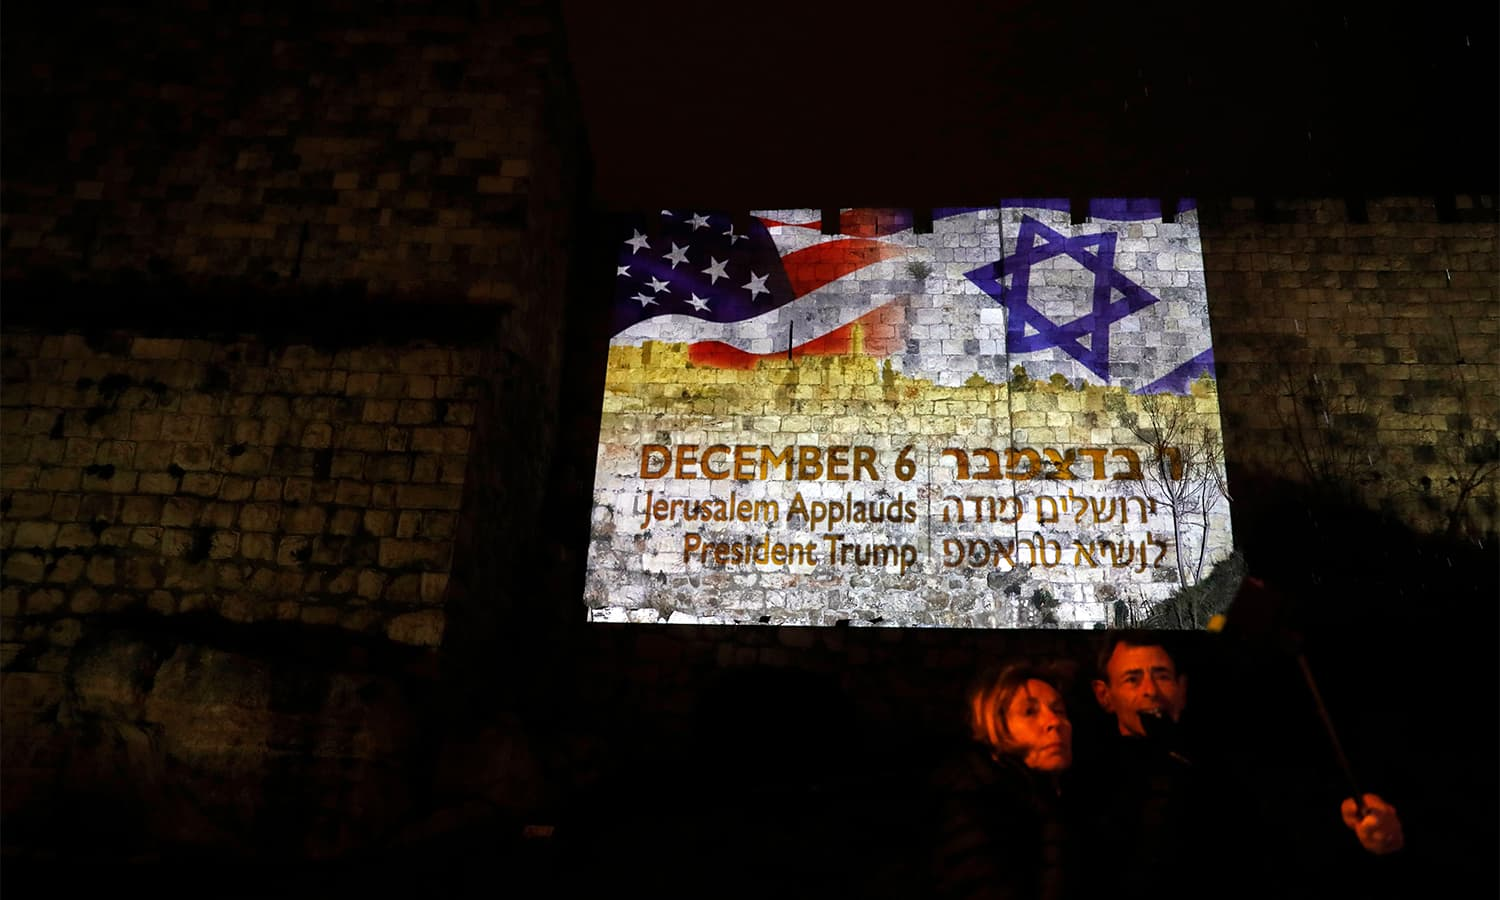 A giant US flag screened alongside Israel's national flag by the Jerusalem municipality on the walls of the old city.— AFP